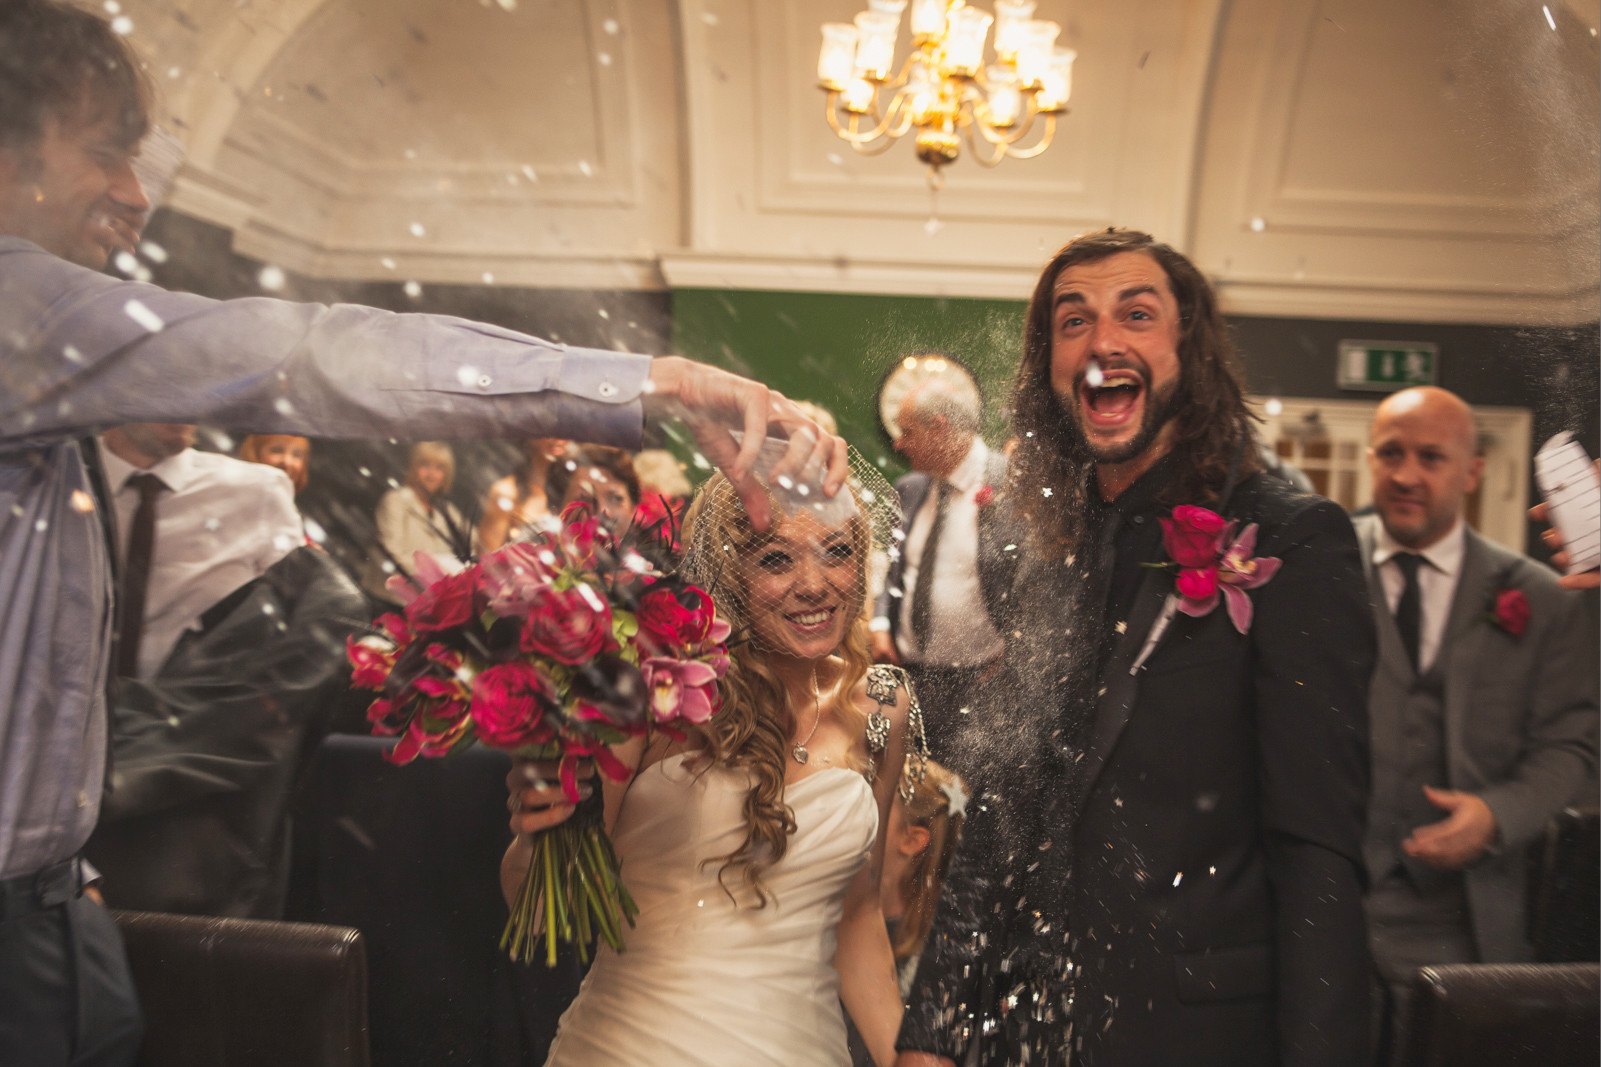 bridebook.co.uk happy couple being showered in confetti